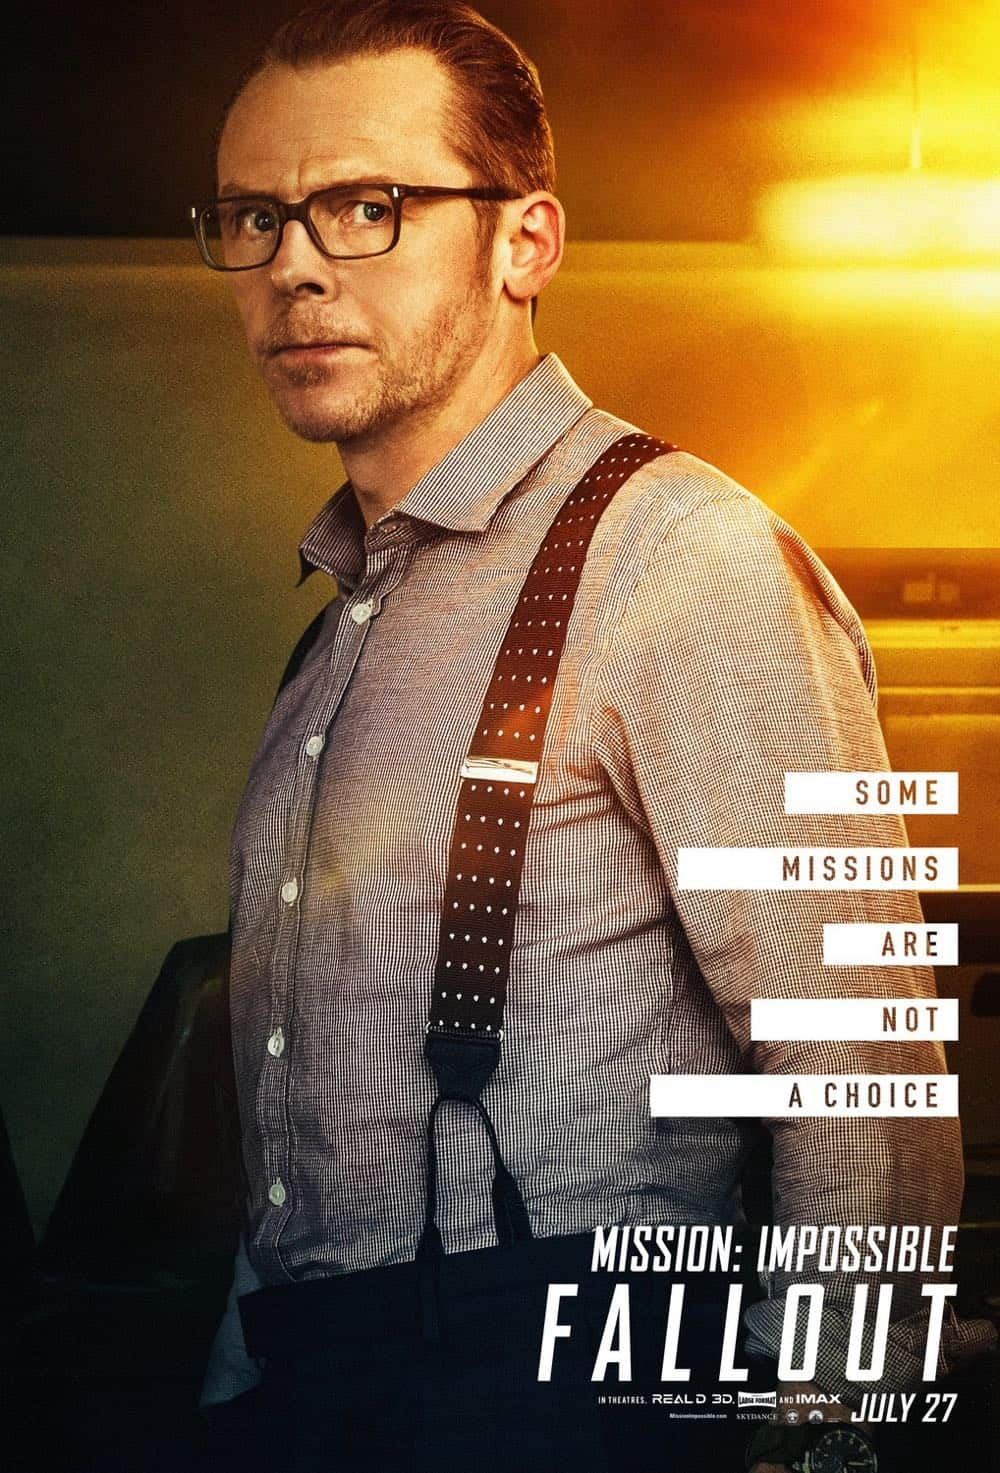 Mission Impossible Fallout Character Movie Poster Simon Pegg